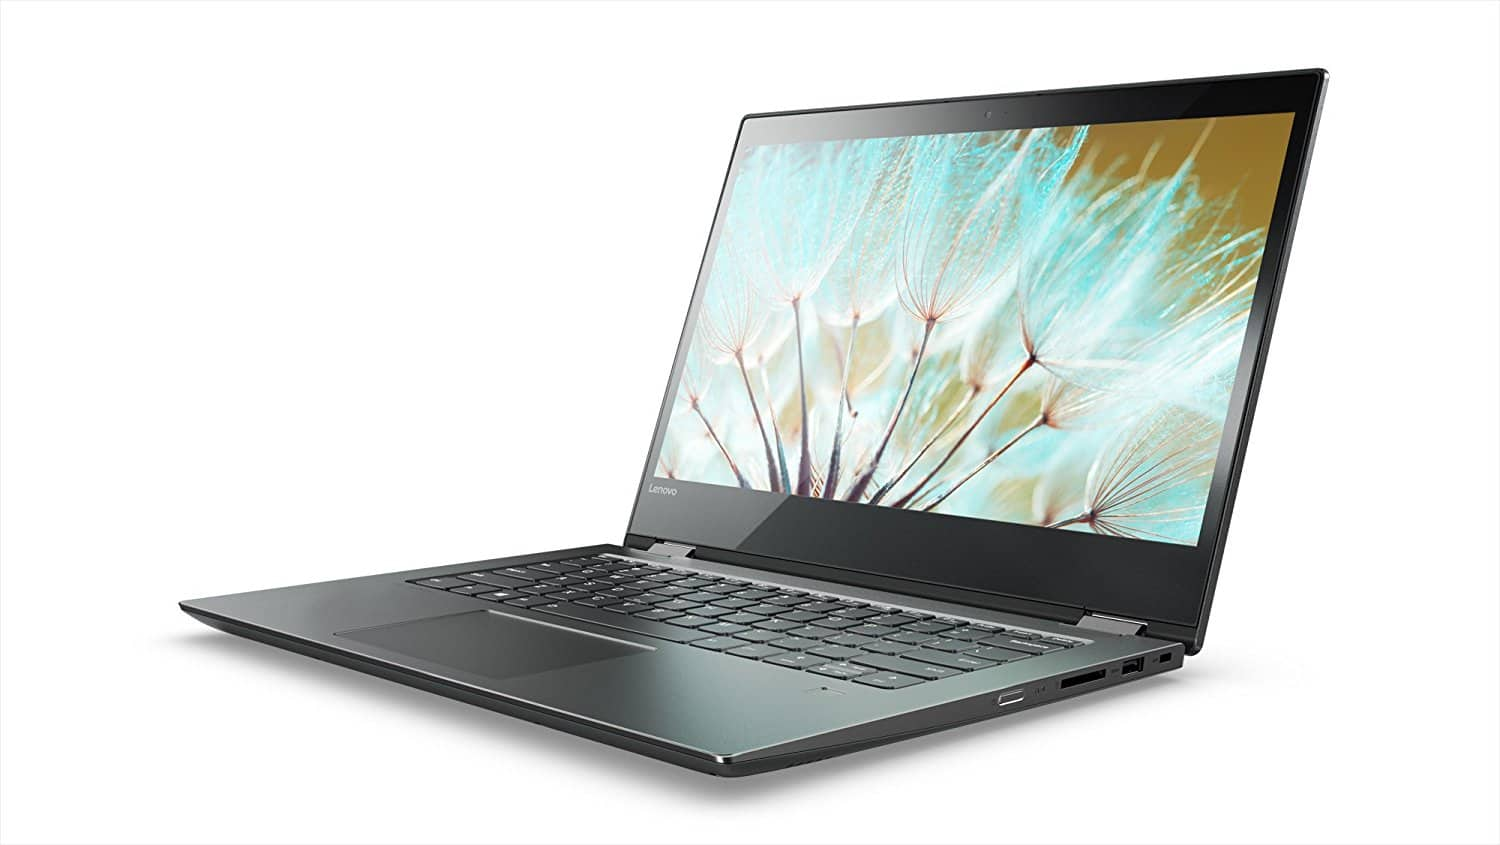 Lenovo Flex 5 14 2-in-1: FHD IPS Touch, i5-8250U, 8GB DDR4, 128GB PCIe SSD, Win10H @ $607.40 + F/S